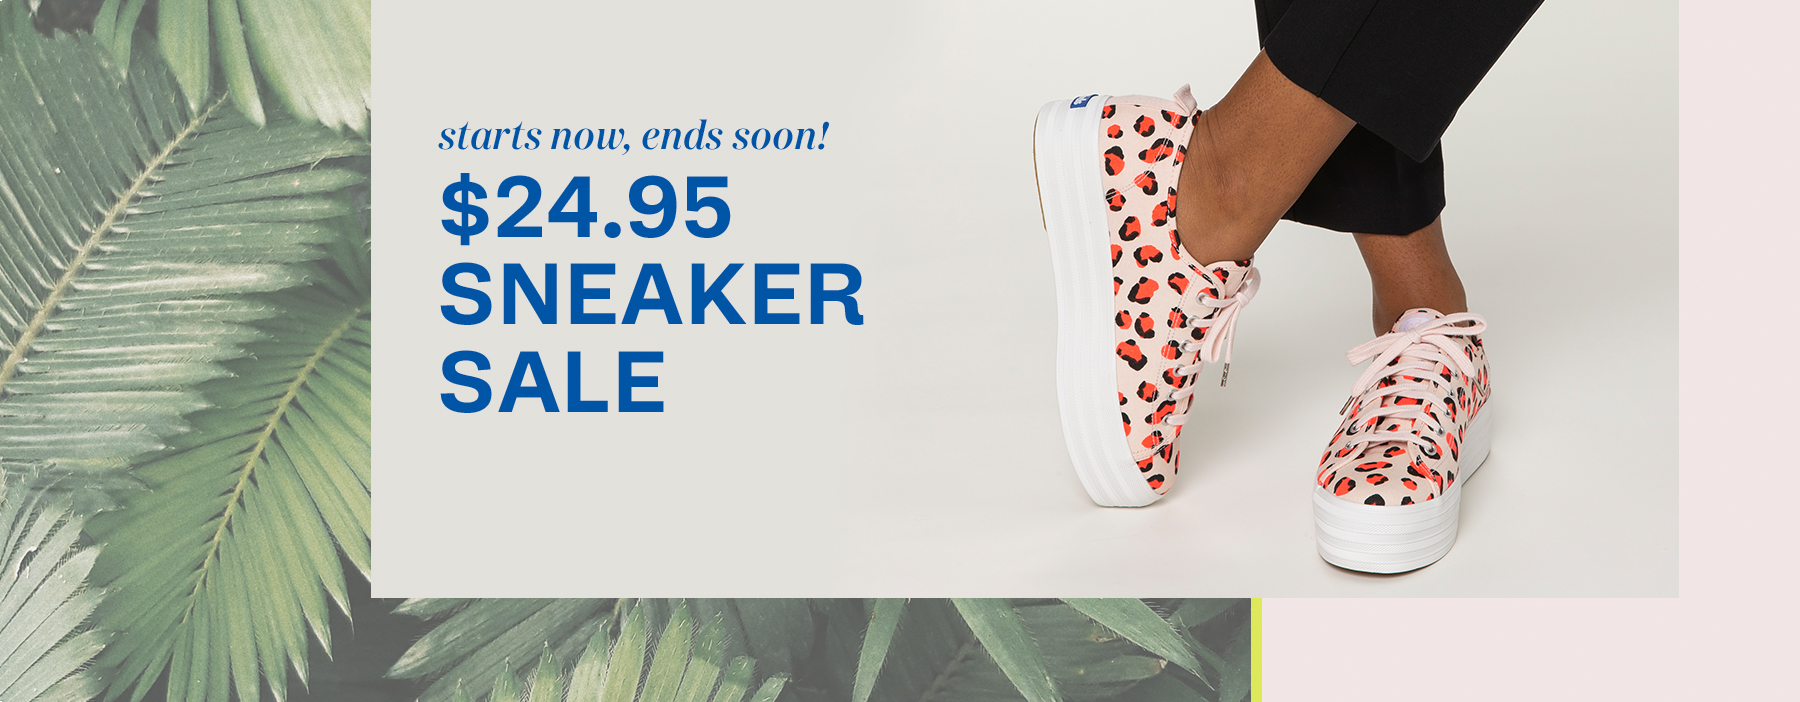 Starts now, ends soon! $24.95 Sneaker sale.